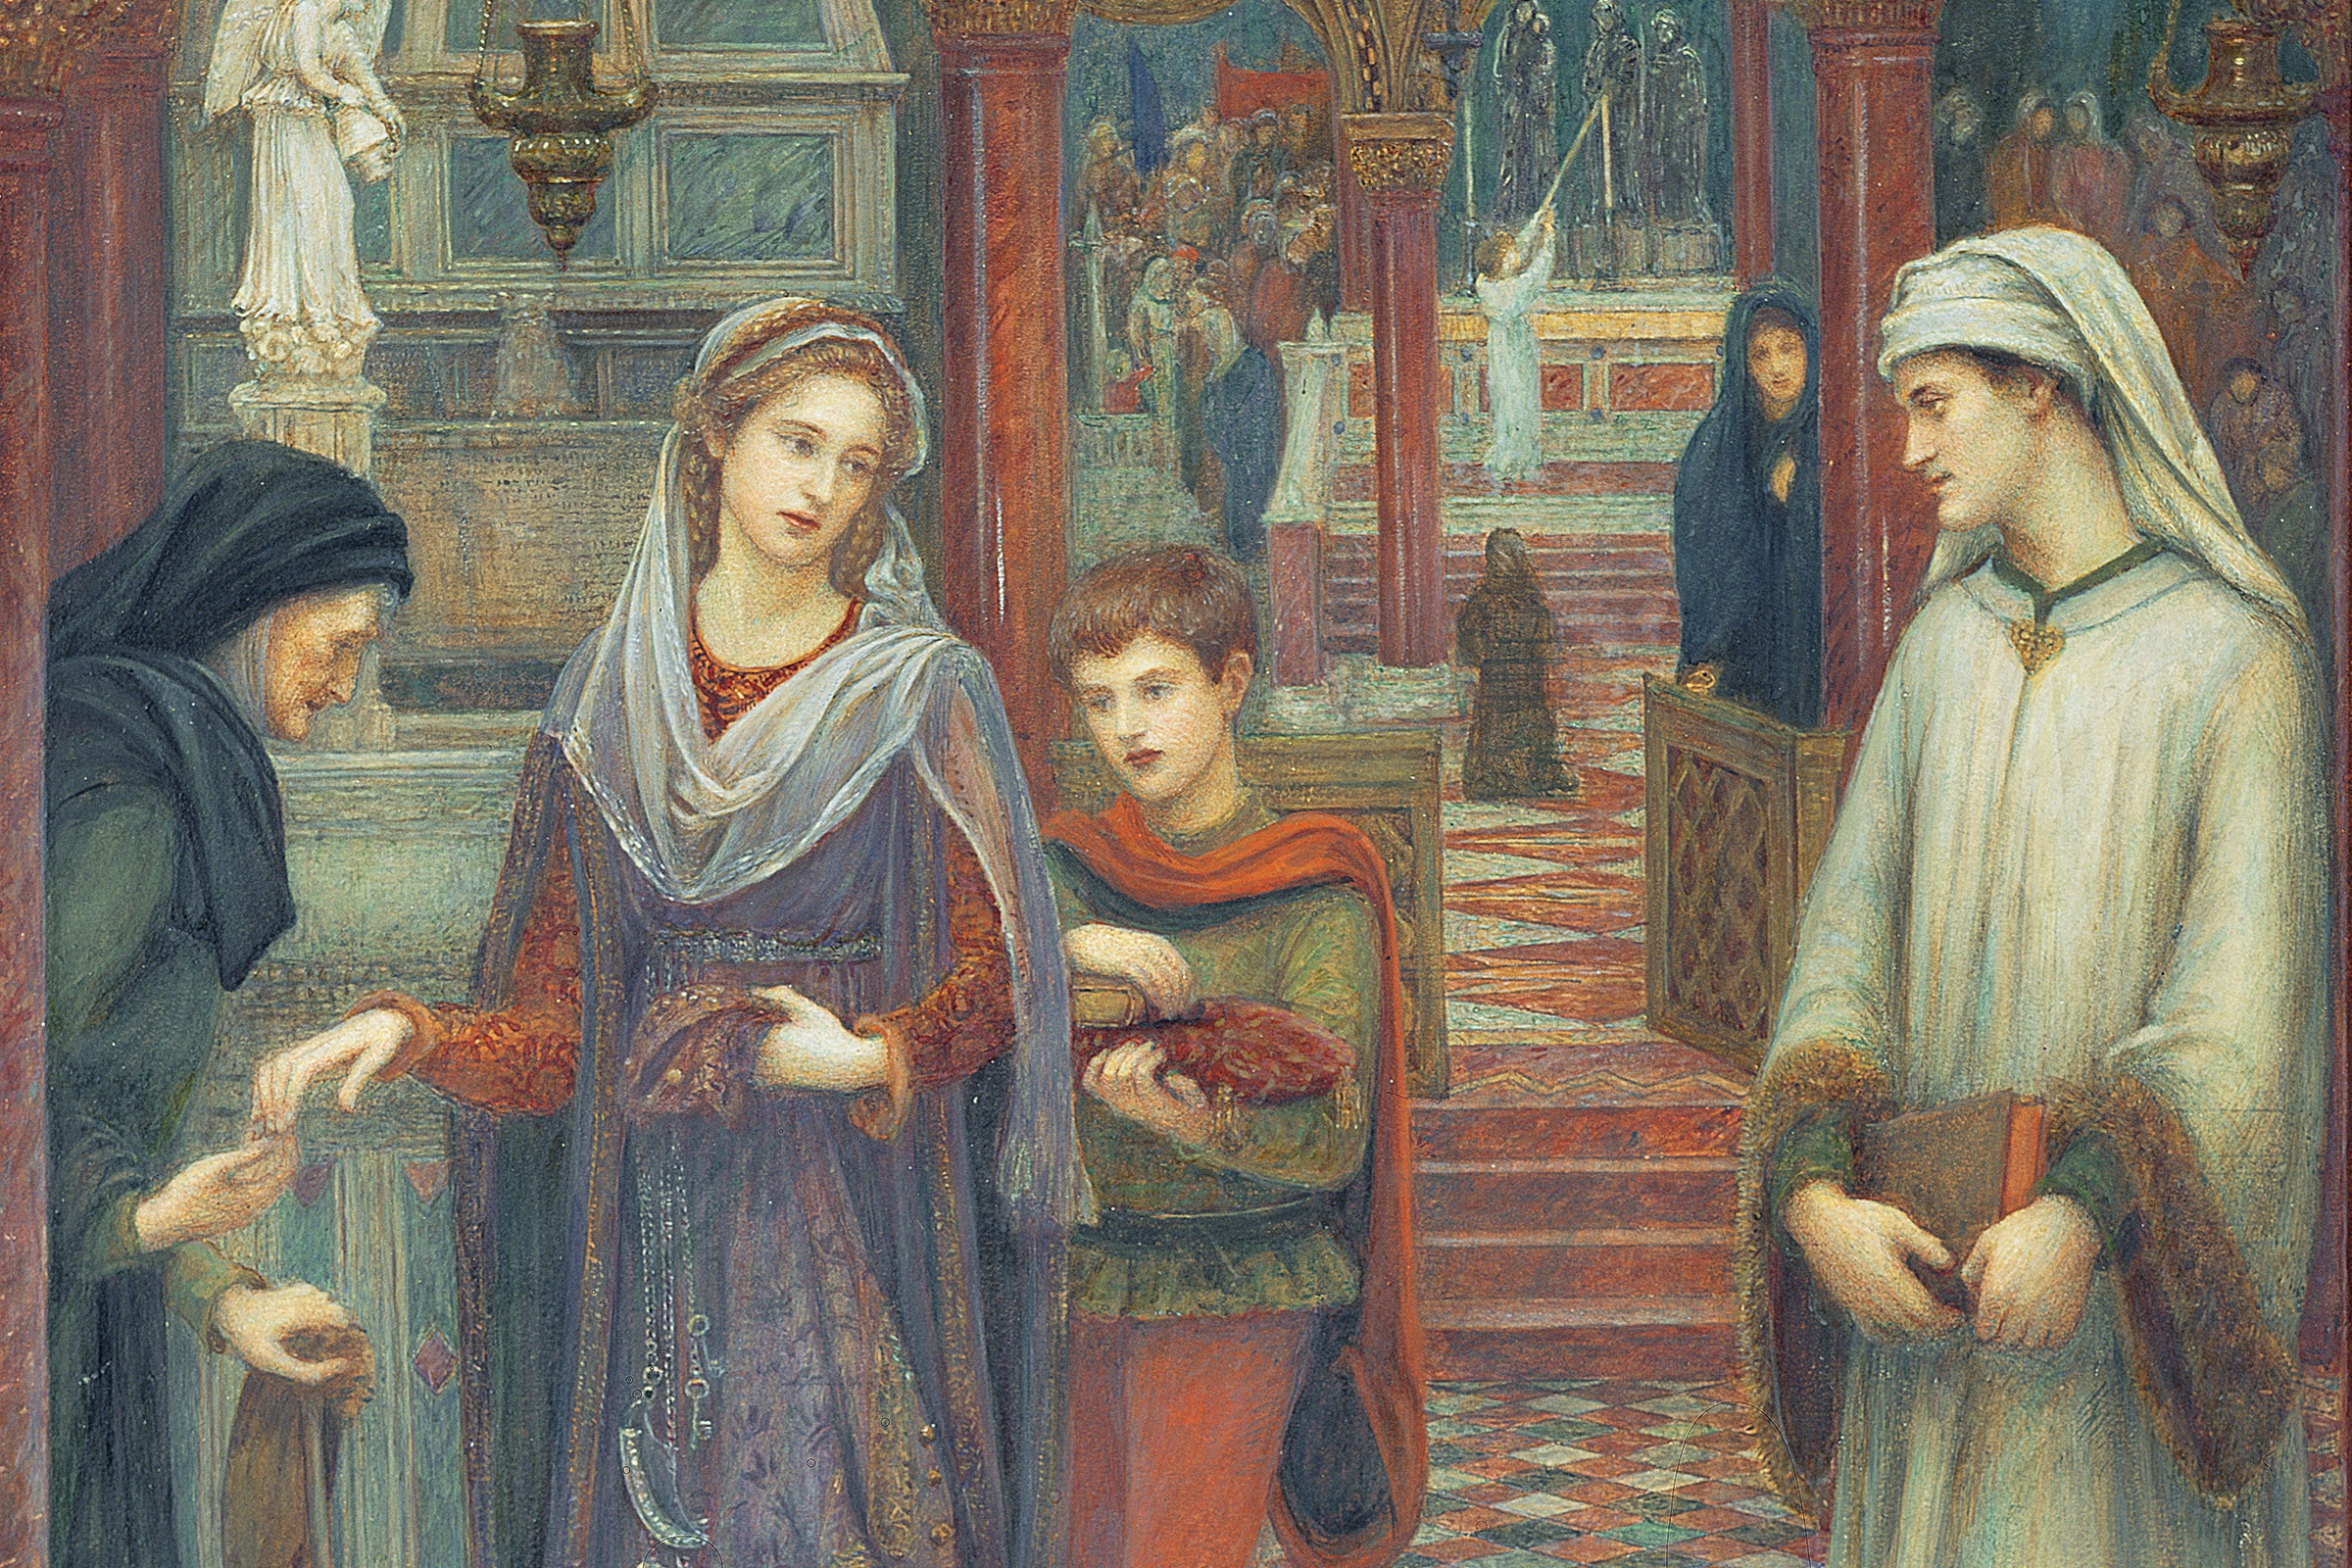 The First Meeting Of Petrarch And Laura, as the National Portrait Gallery is to explore untold stories of Pre-Raphaelite women